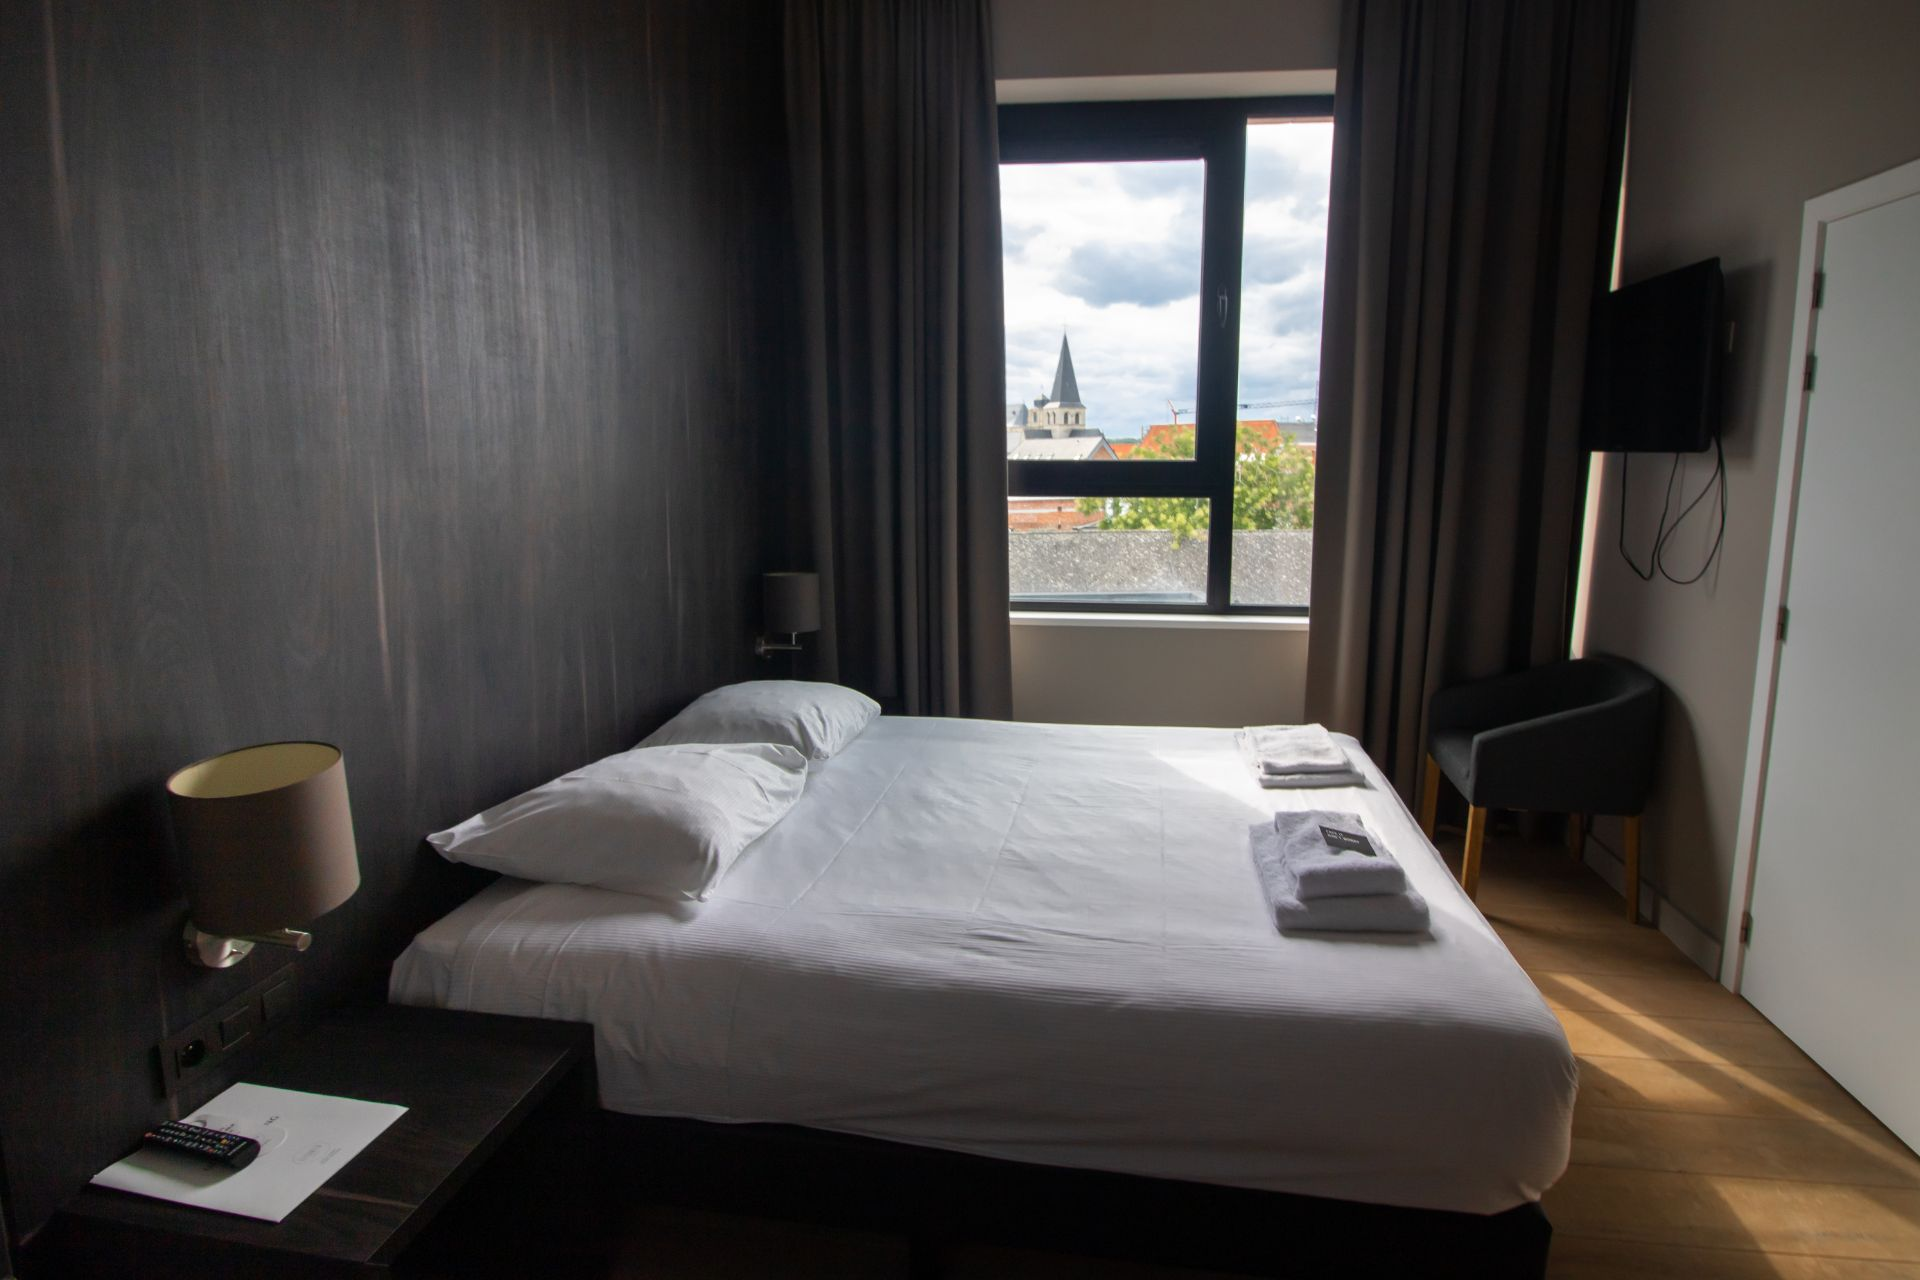 hotel-room-with-double-bed-bedside-table-chair-and-tv-with-a-view-overlooking-a-european-city-hotel-elisabeth-mechelen-belgium